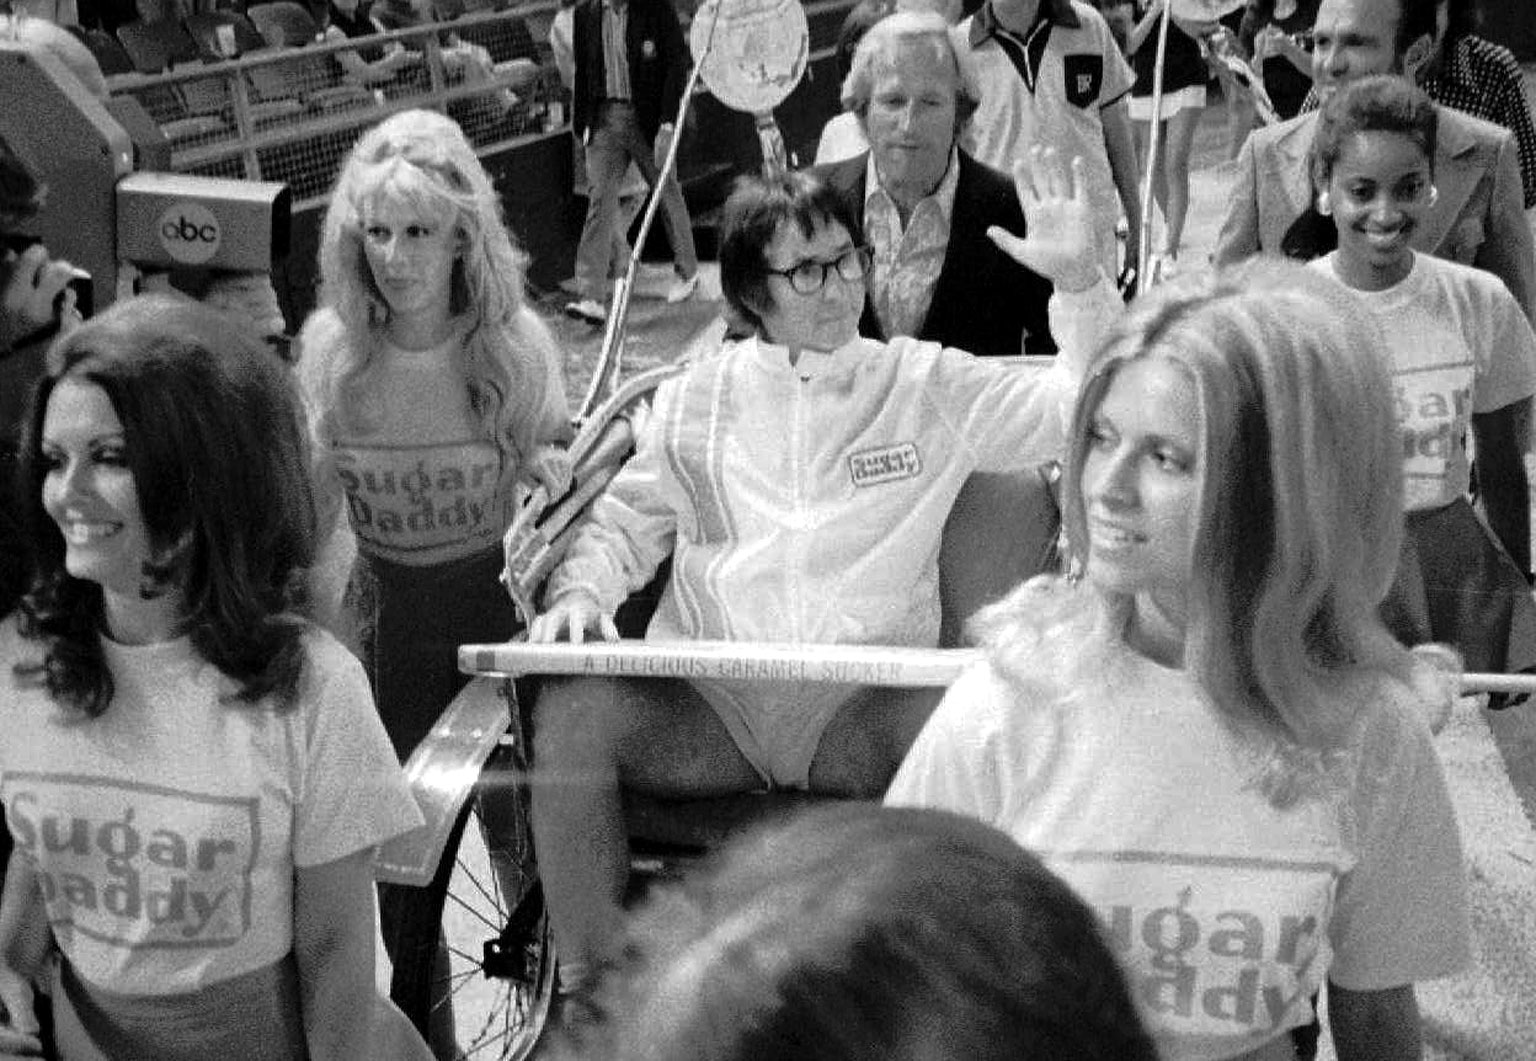 Bobby Riggs in a rickshaw pulled by beautiful women onto the court. Photo: chess